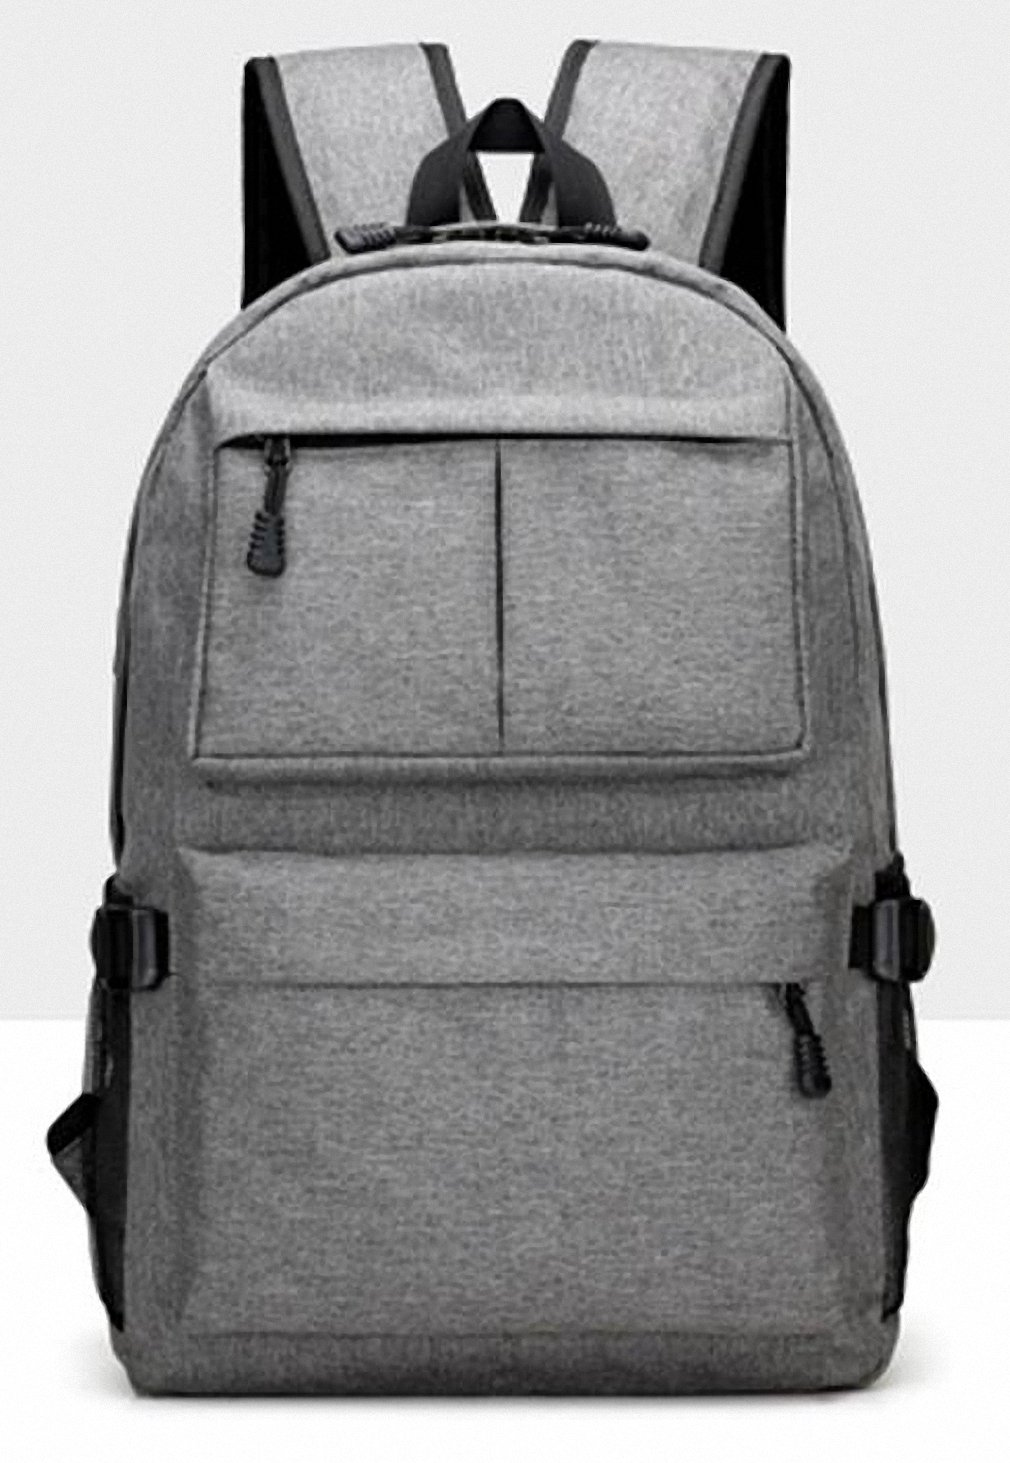 b2184cd7d460 Amazon.com  AHRI USB Unisex Design Backpack Book Bags for School Backpack  Casual Rucksack Daypack Oxford Canvas Laptop Fashion Man Backpacks Gray 17  Inches  ...